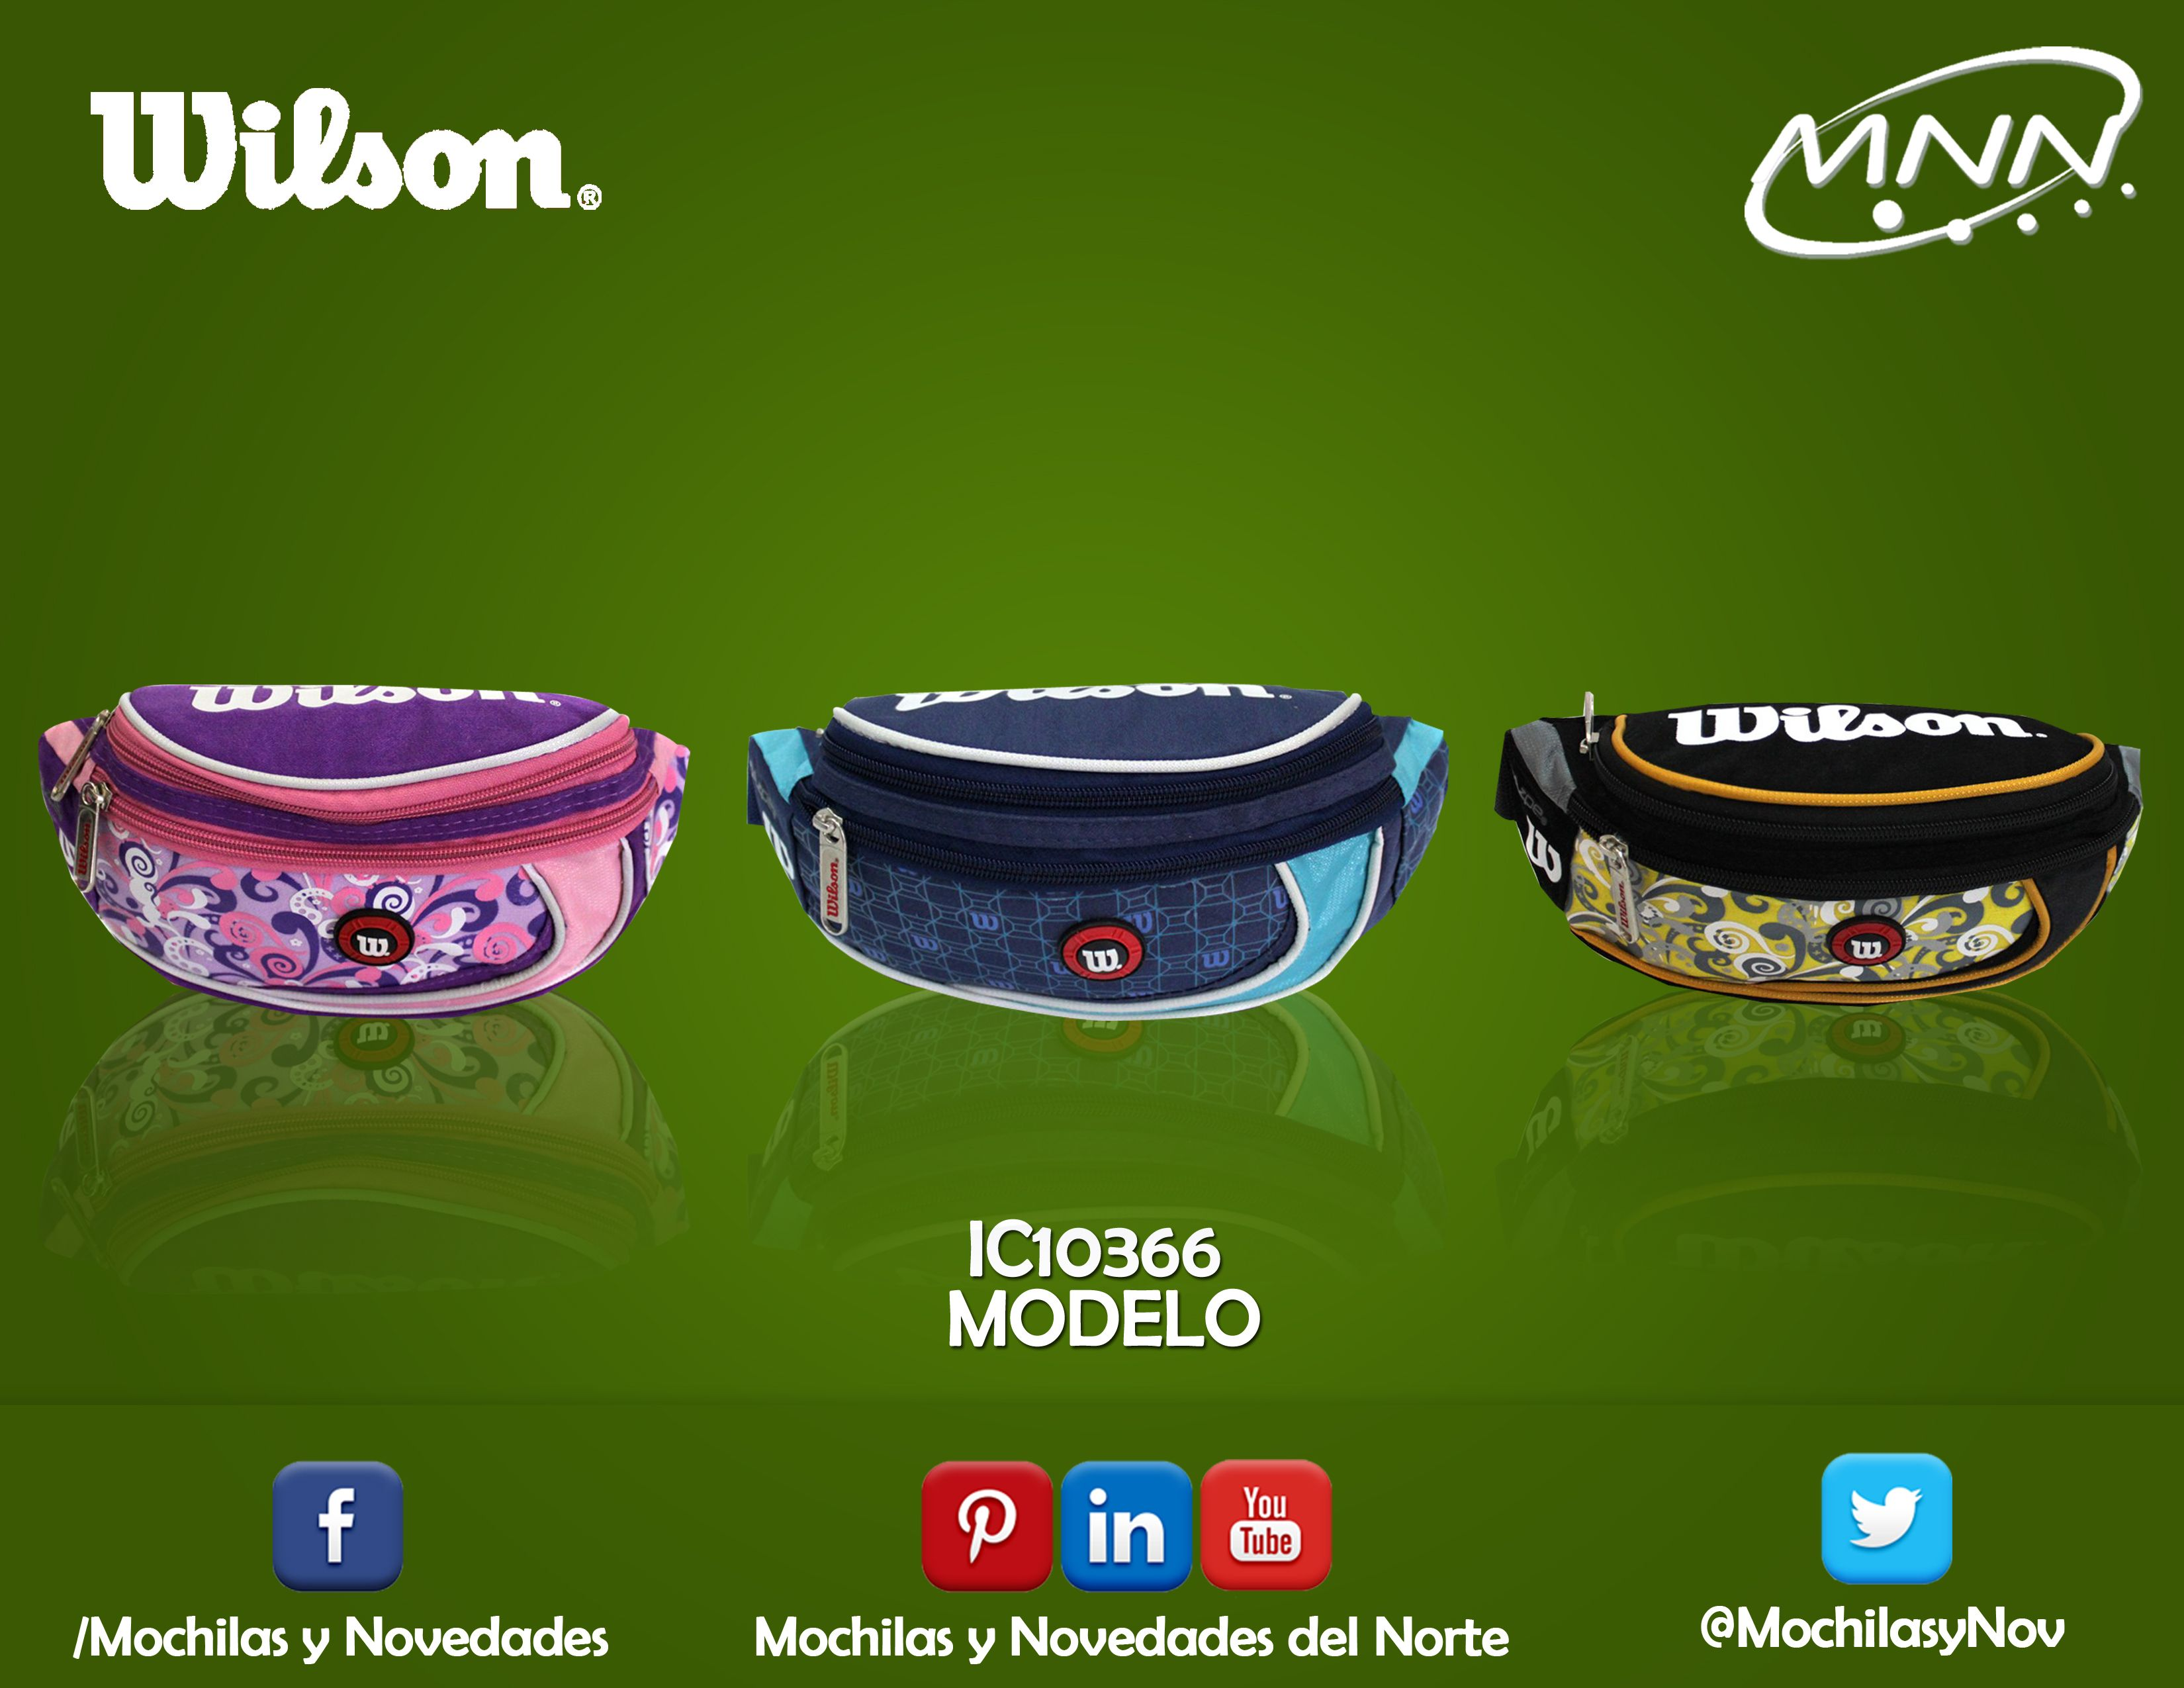 Canguro de Wilson http://www.mnn.com.mx/product.php?id_product=515